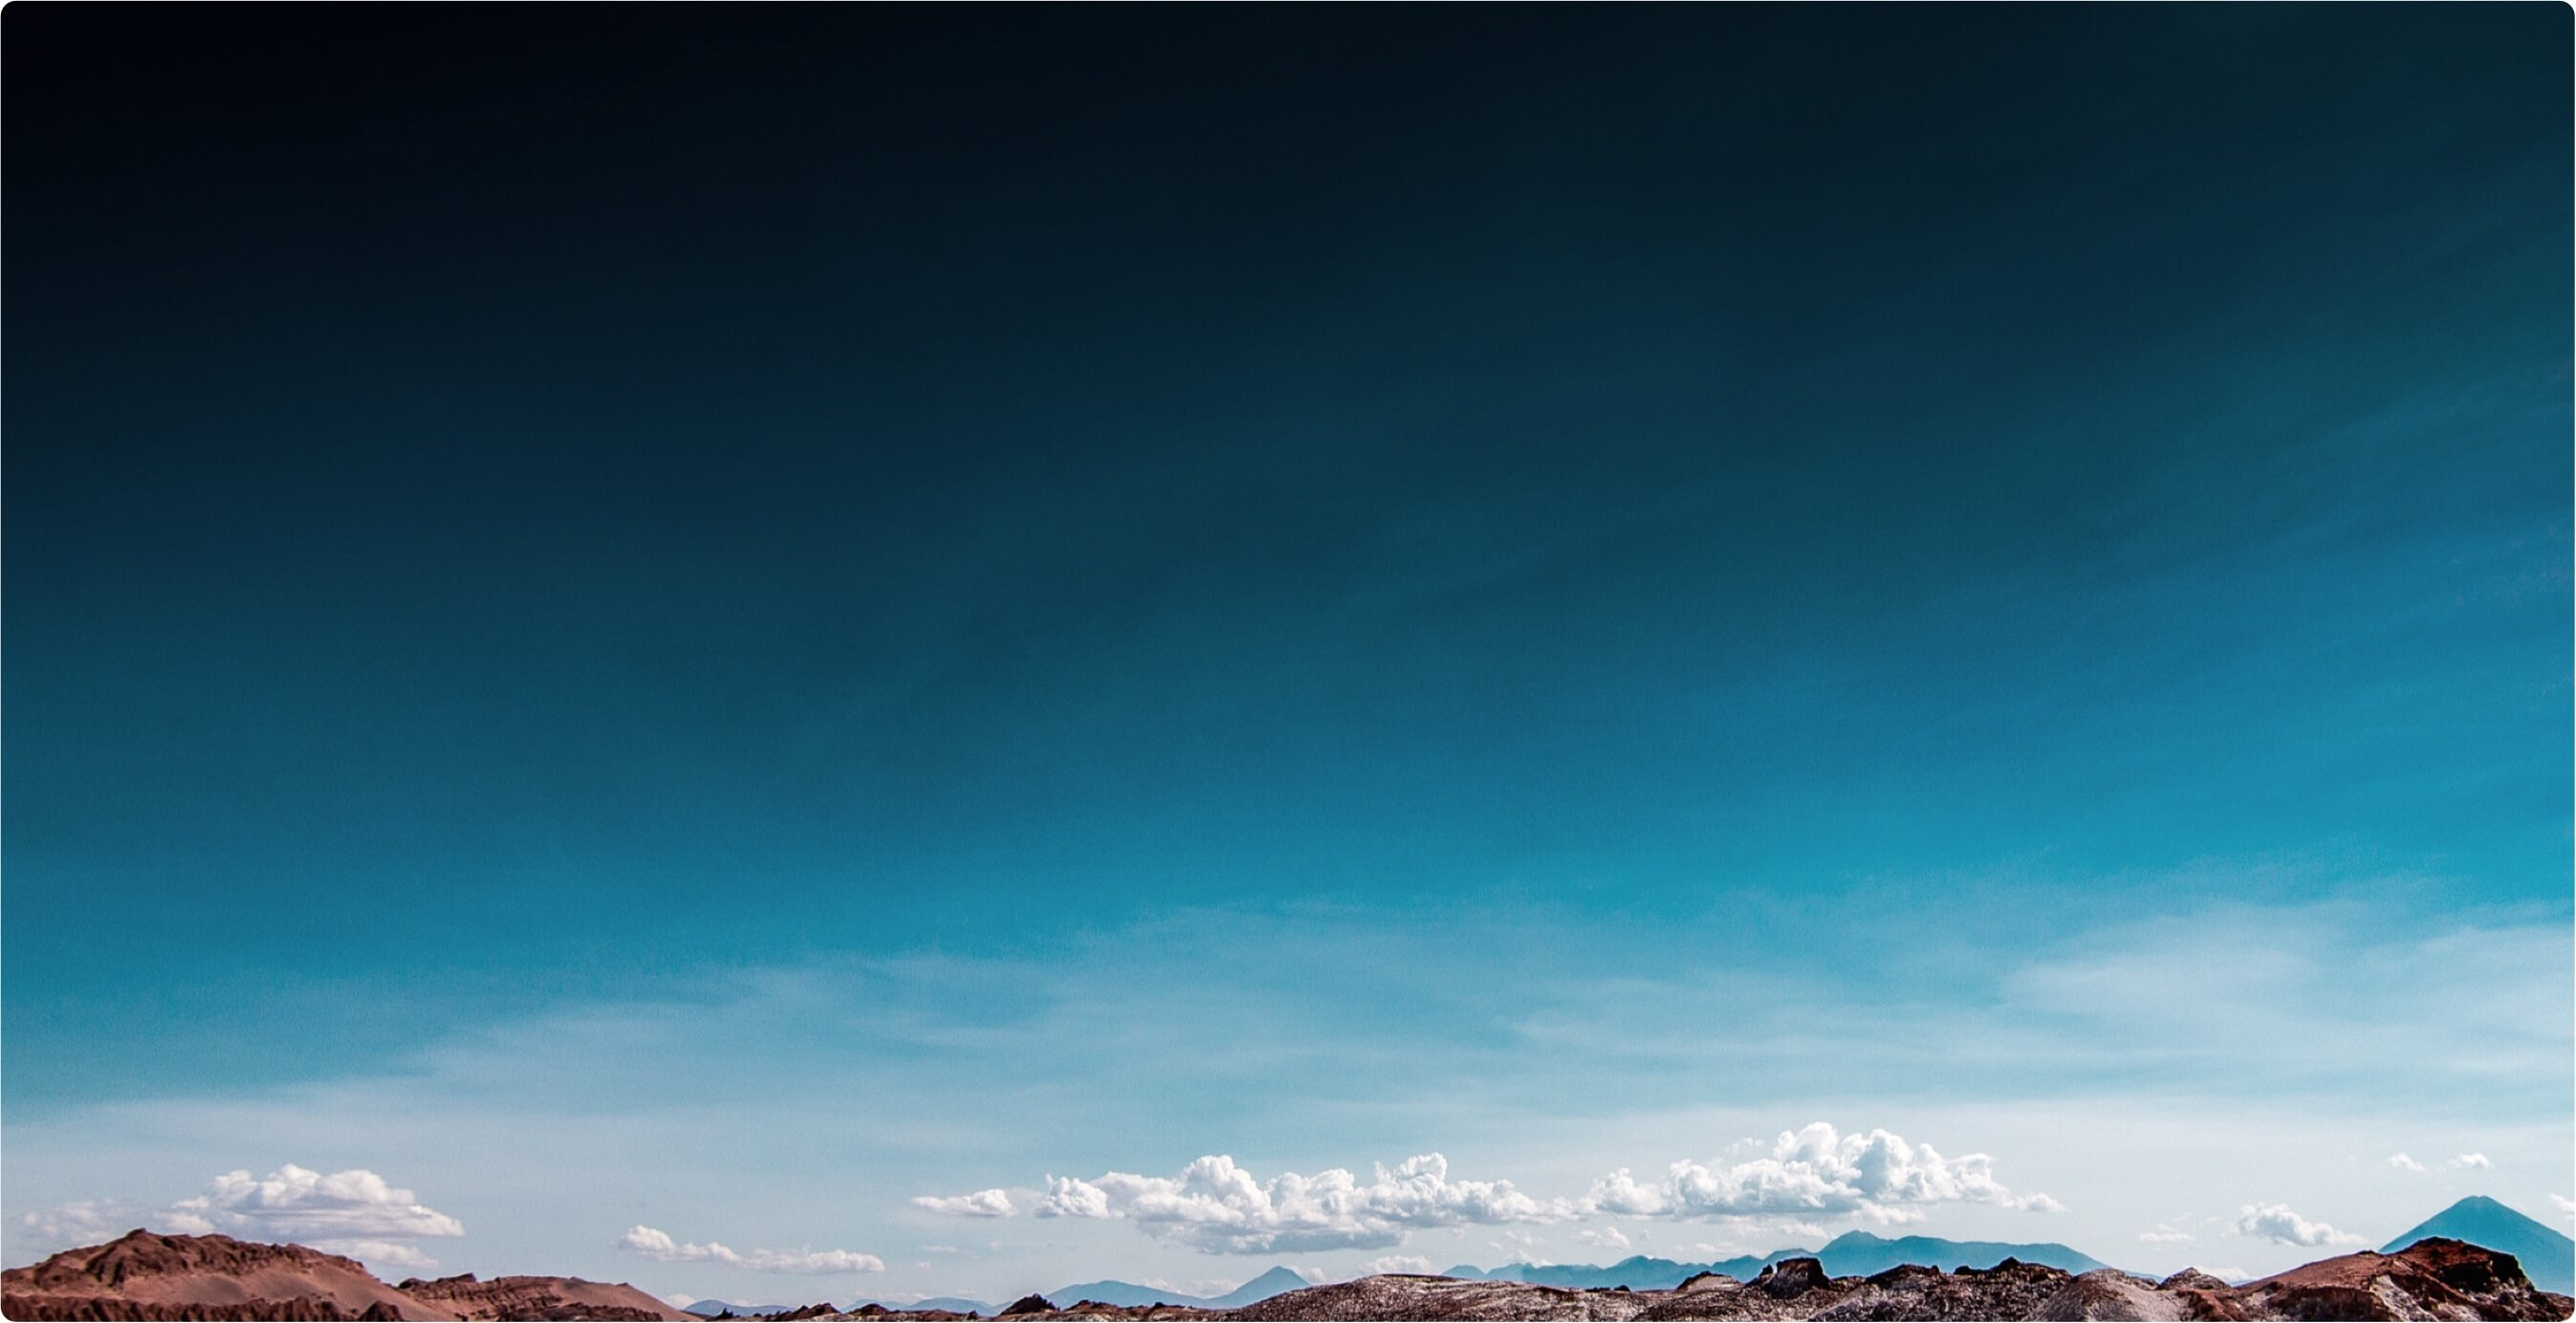 Mountain range against blue sky and clouds